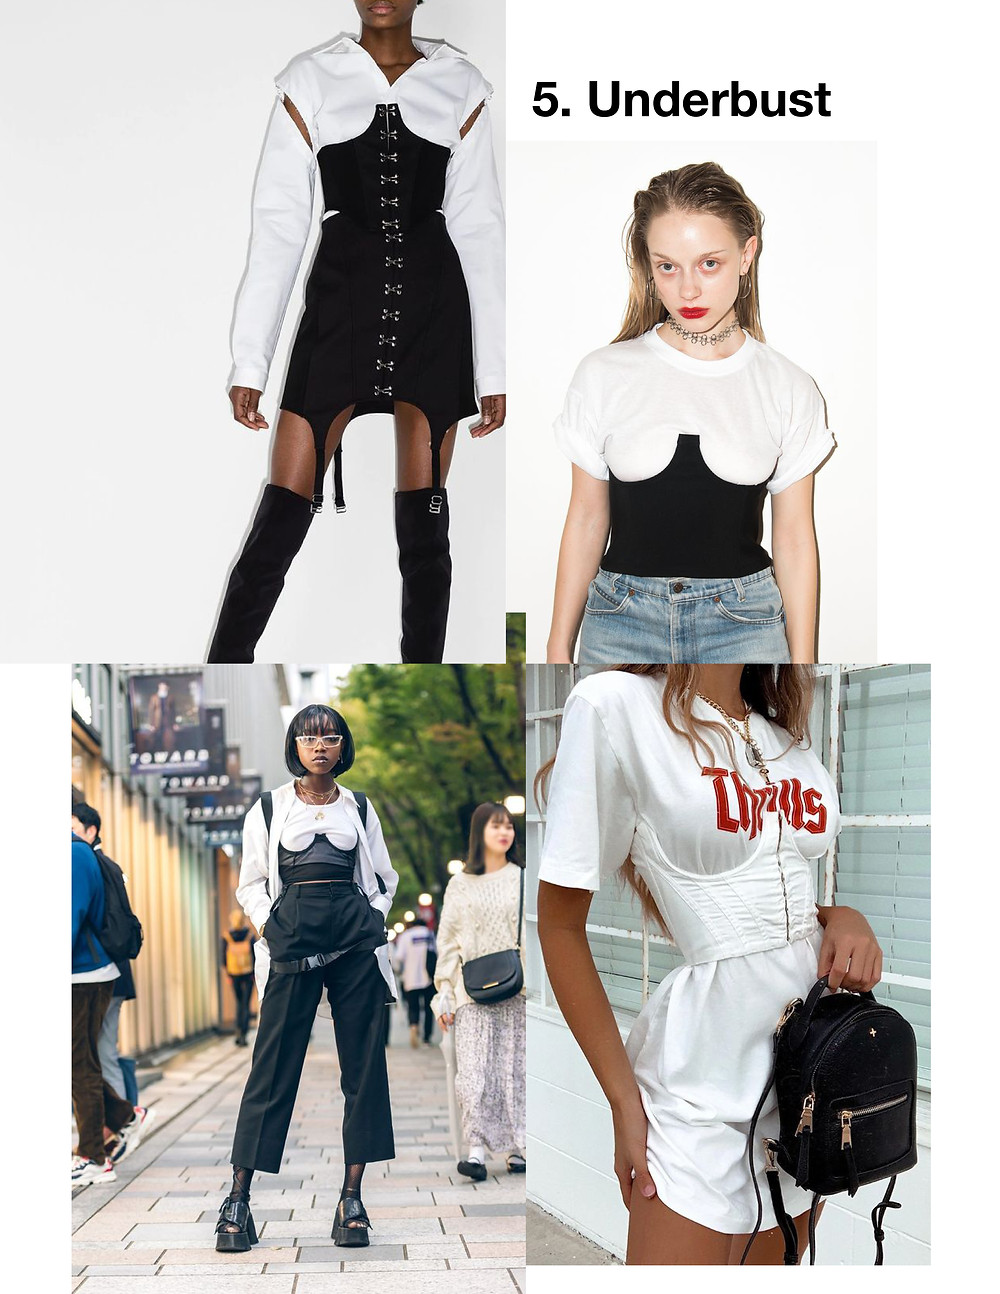 Fashion, Style, trendy tops for summer 2021, vintage corset outfit, under bust corset top